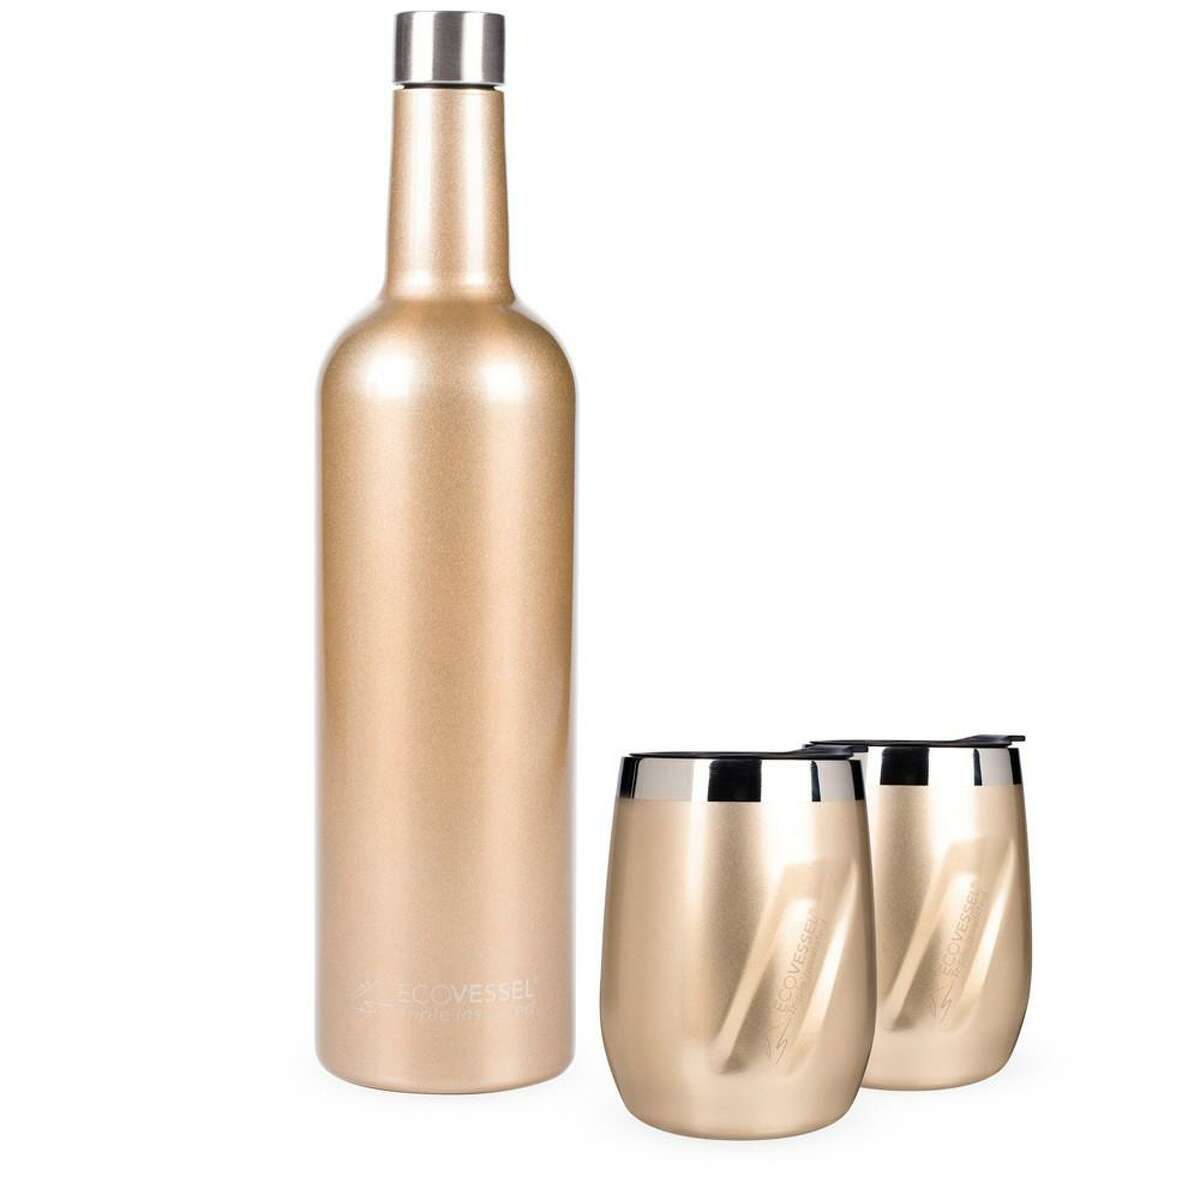 Eco Vessel's Port tumblers match an available insulated bottle.